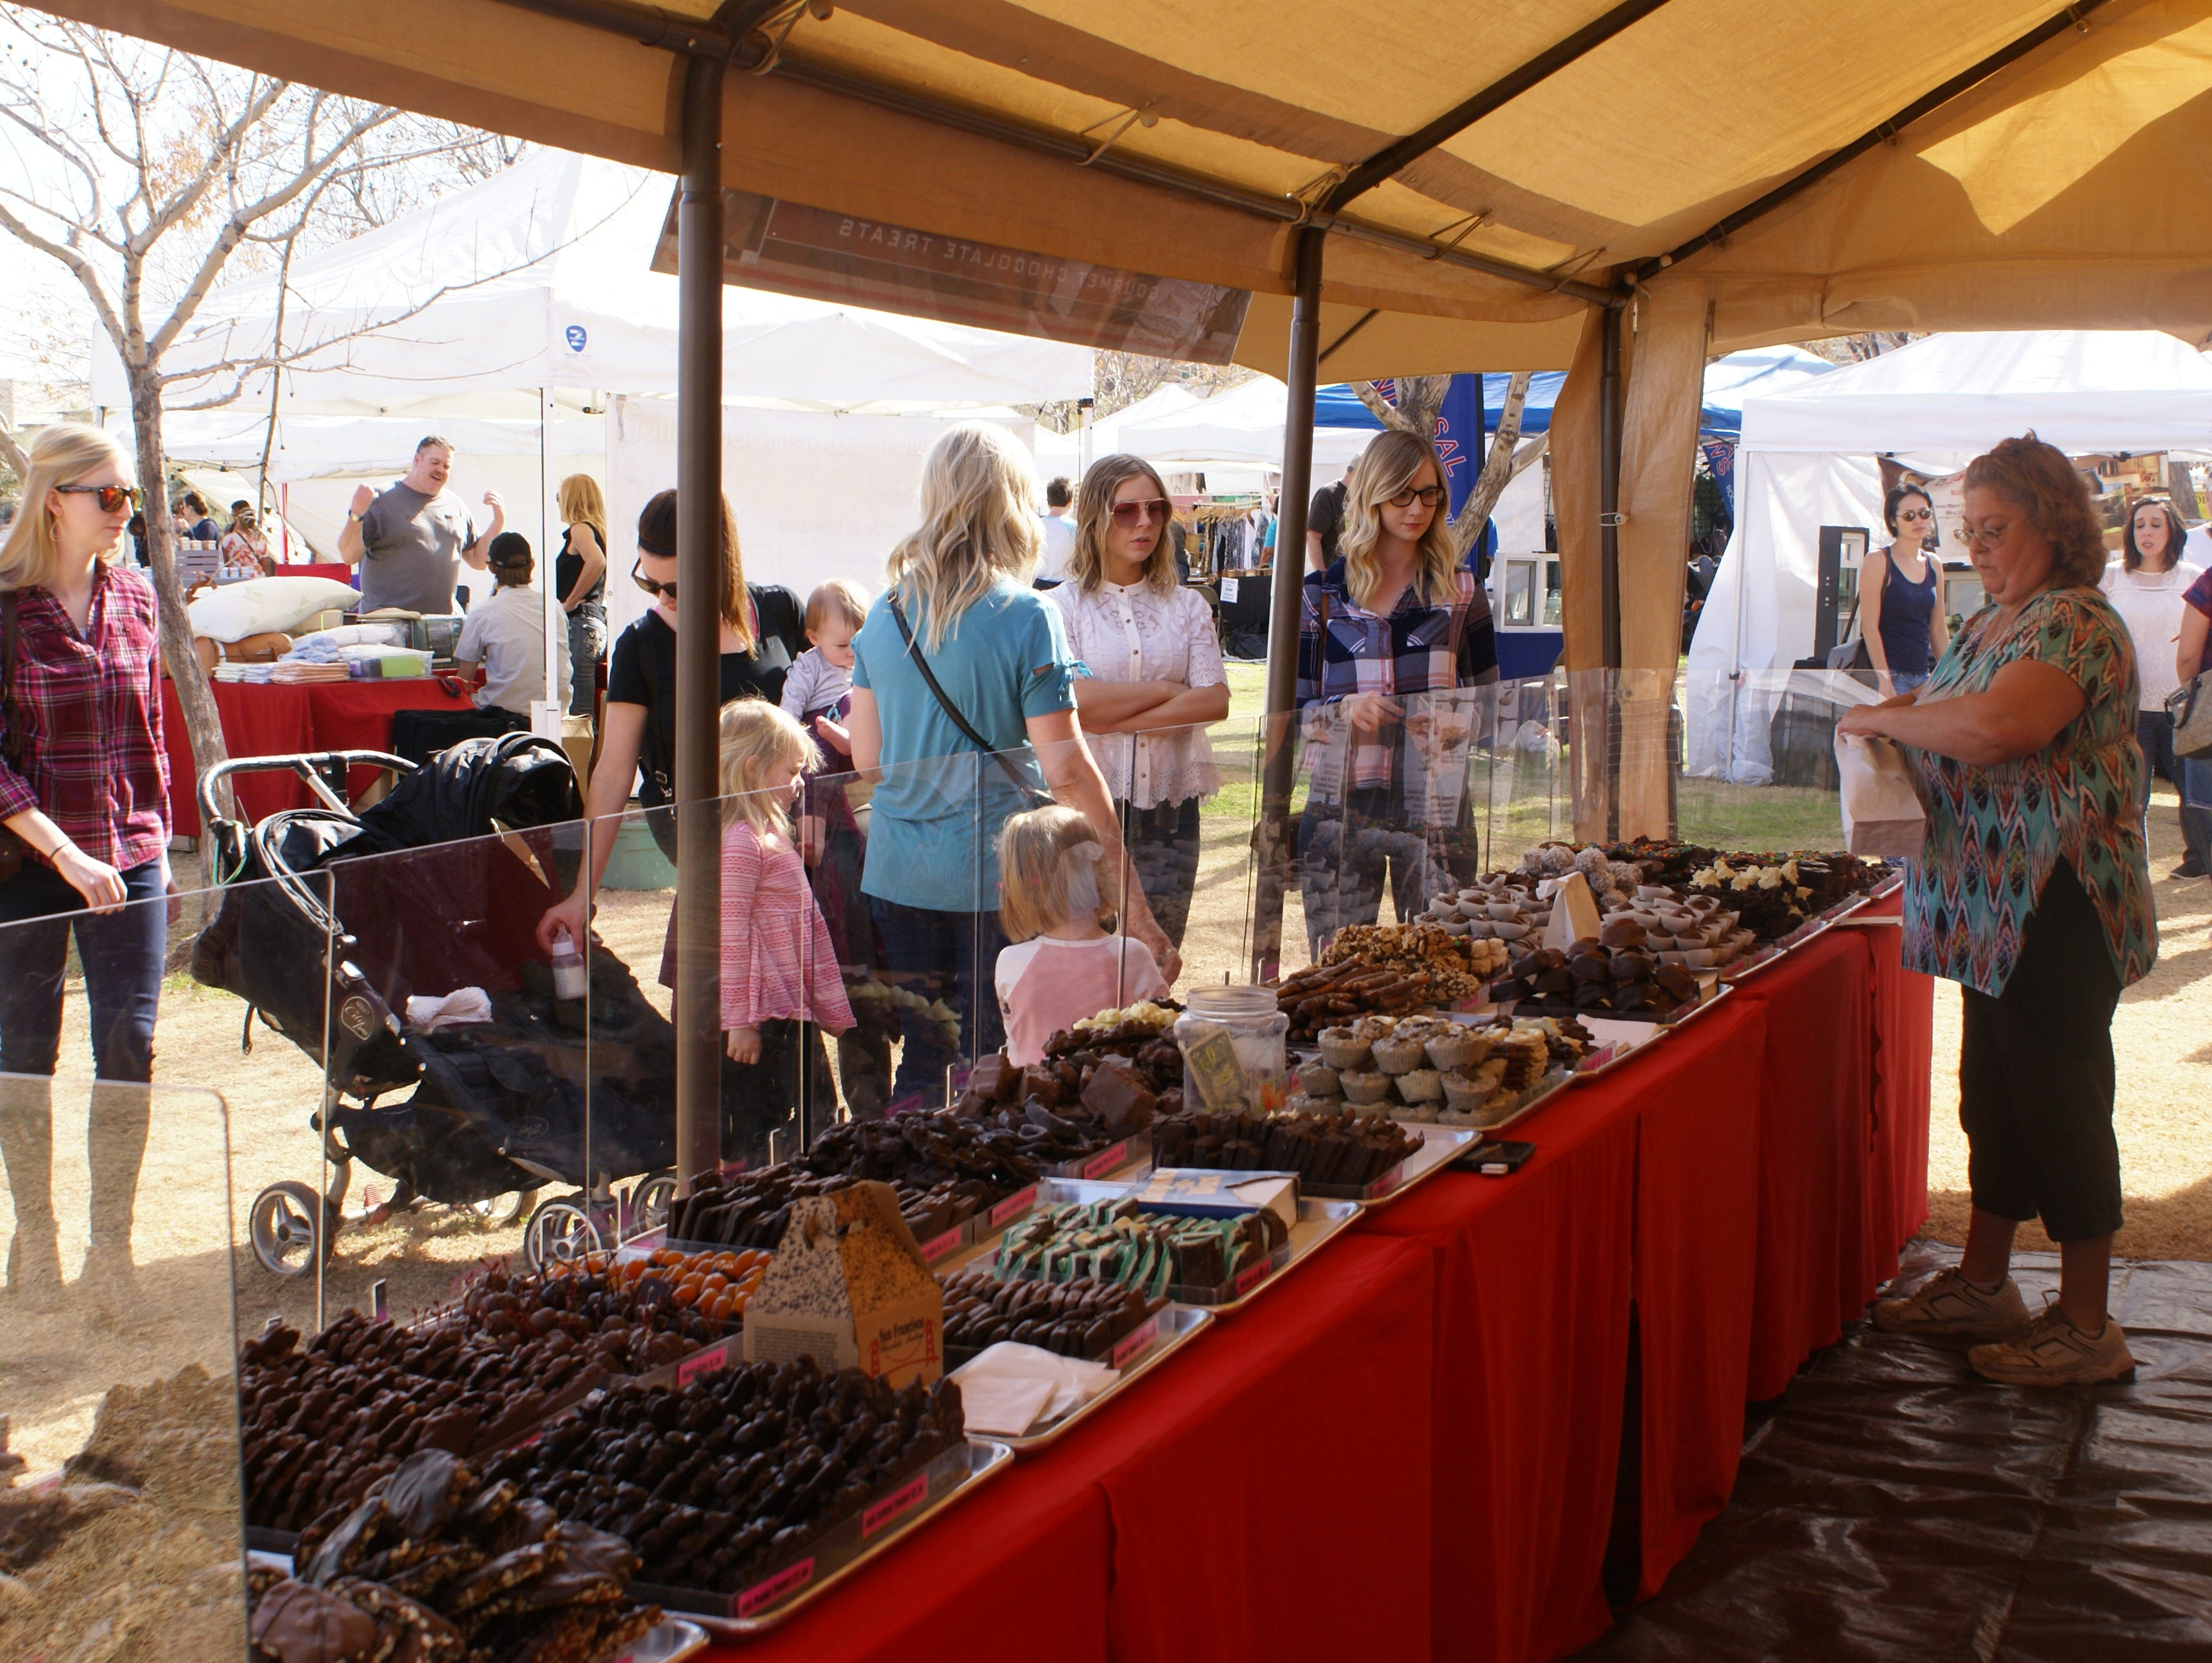 During the Art of Chocolate A'Fair, vendors will have different chocolate confections.